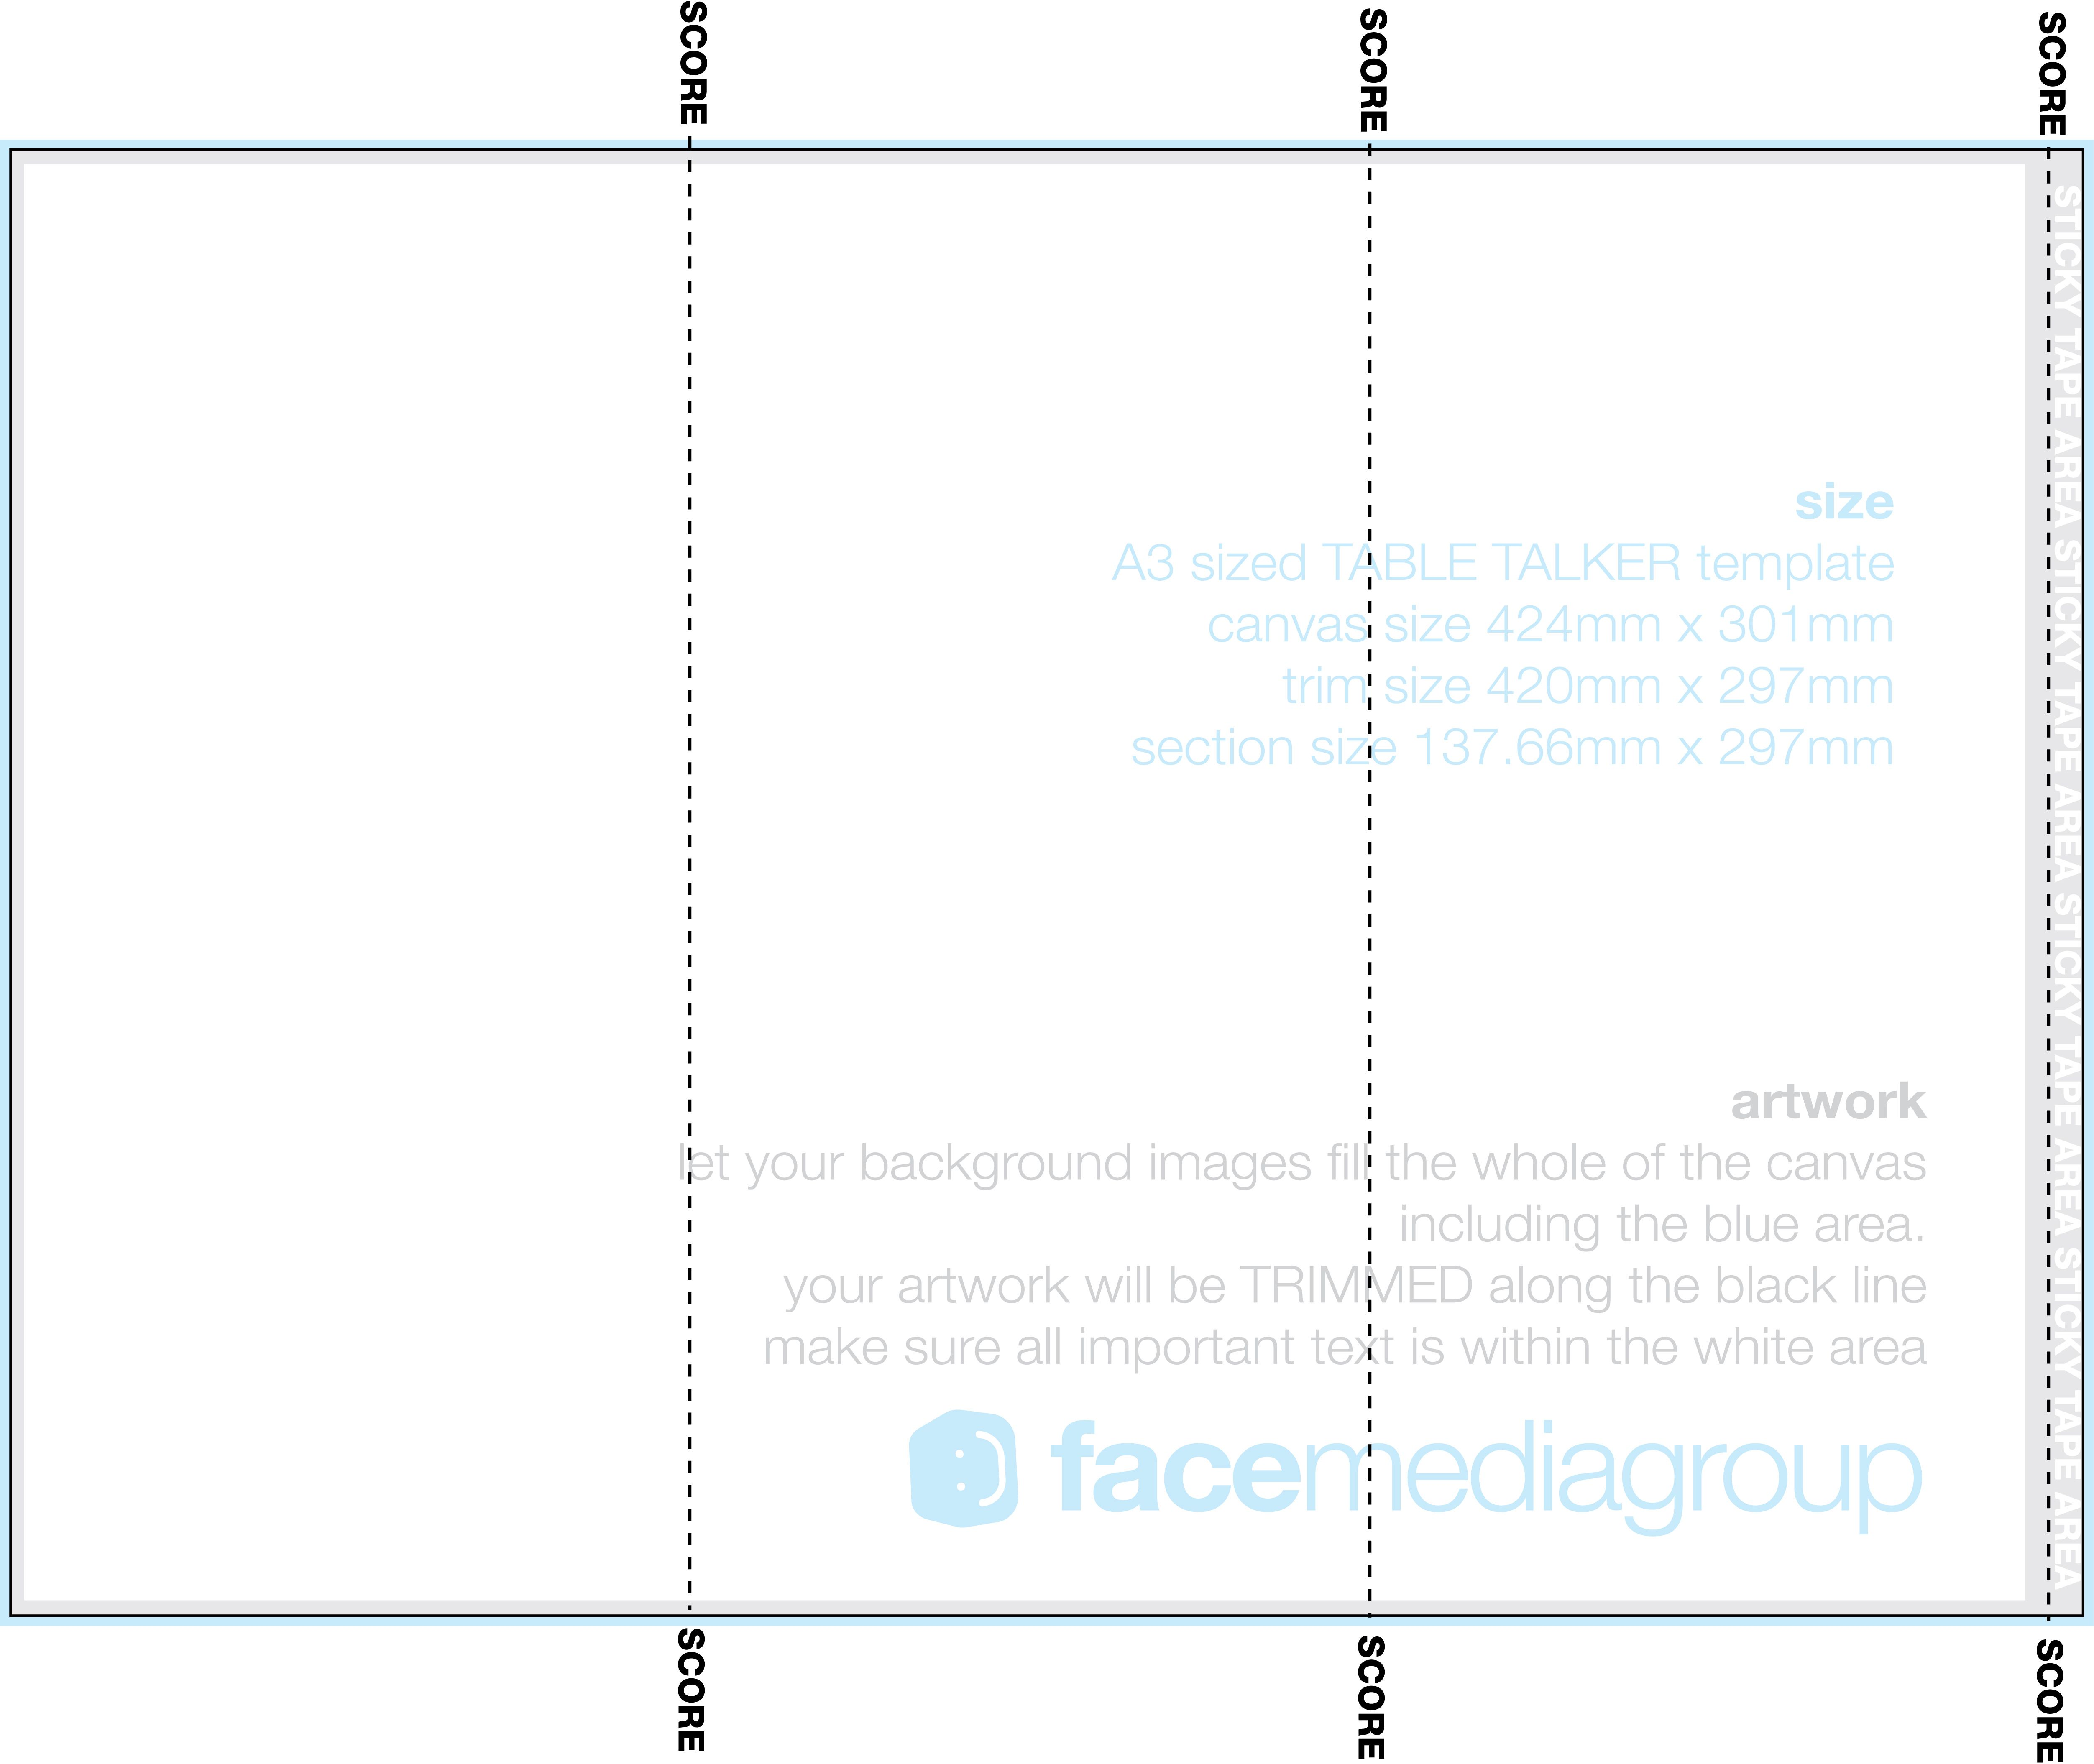 A3 Tri Fold Table Talker Template Photo Page Everystockphoto With Regard To Tri Fold Tent Card Templa Card Template Tent Cards Free Business Card Templates